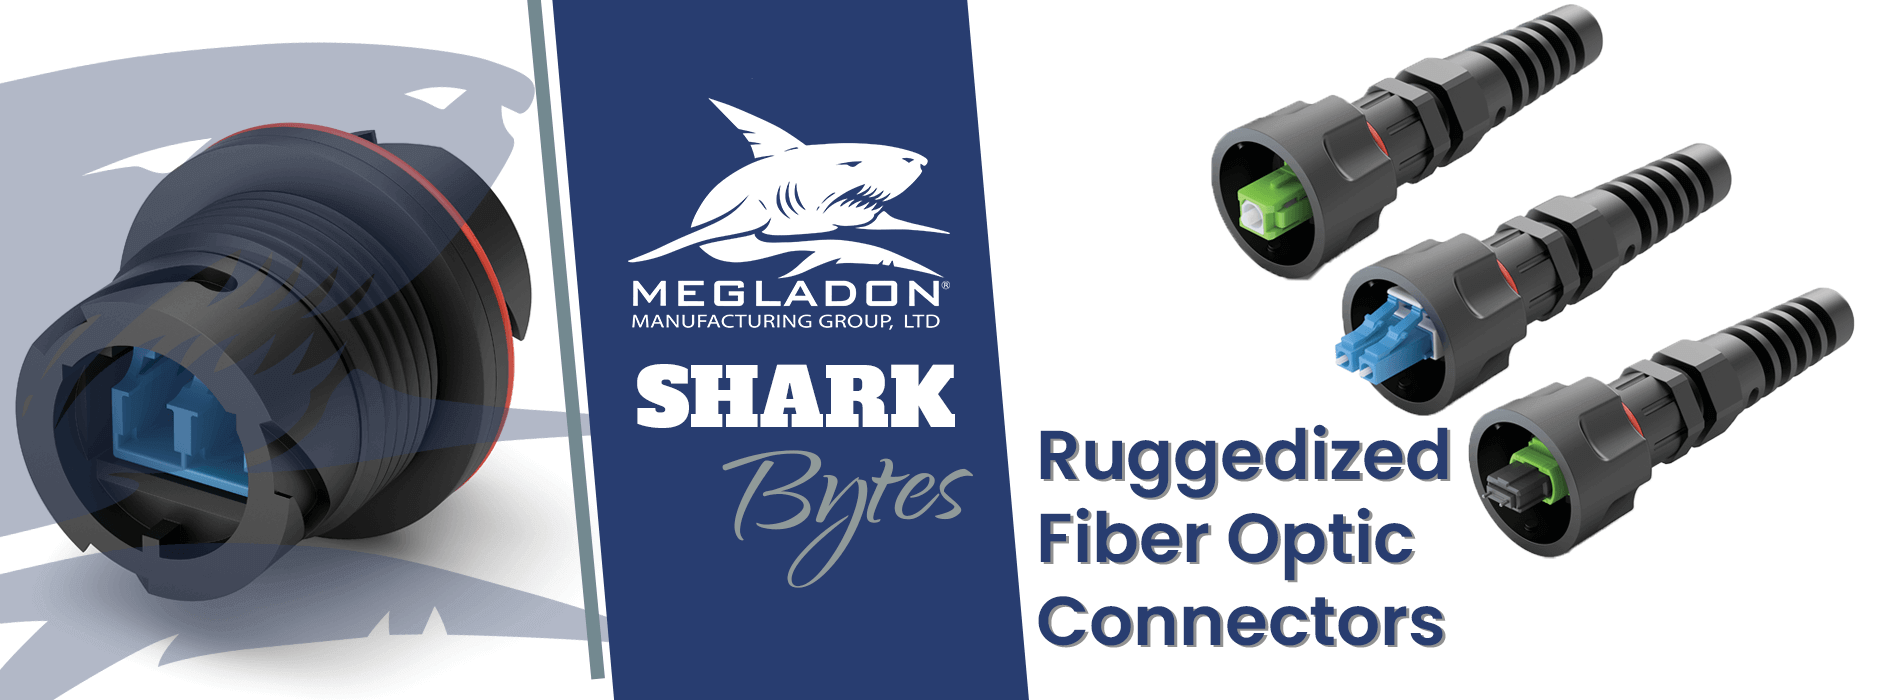 IP Series Connector: Ruggedized Fiber Optic Connectors Protect From Harsh Conditions